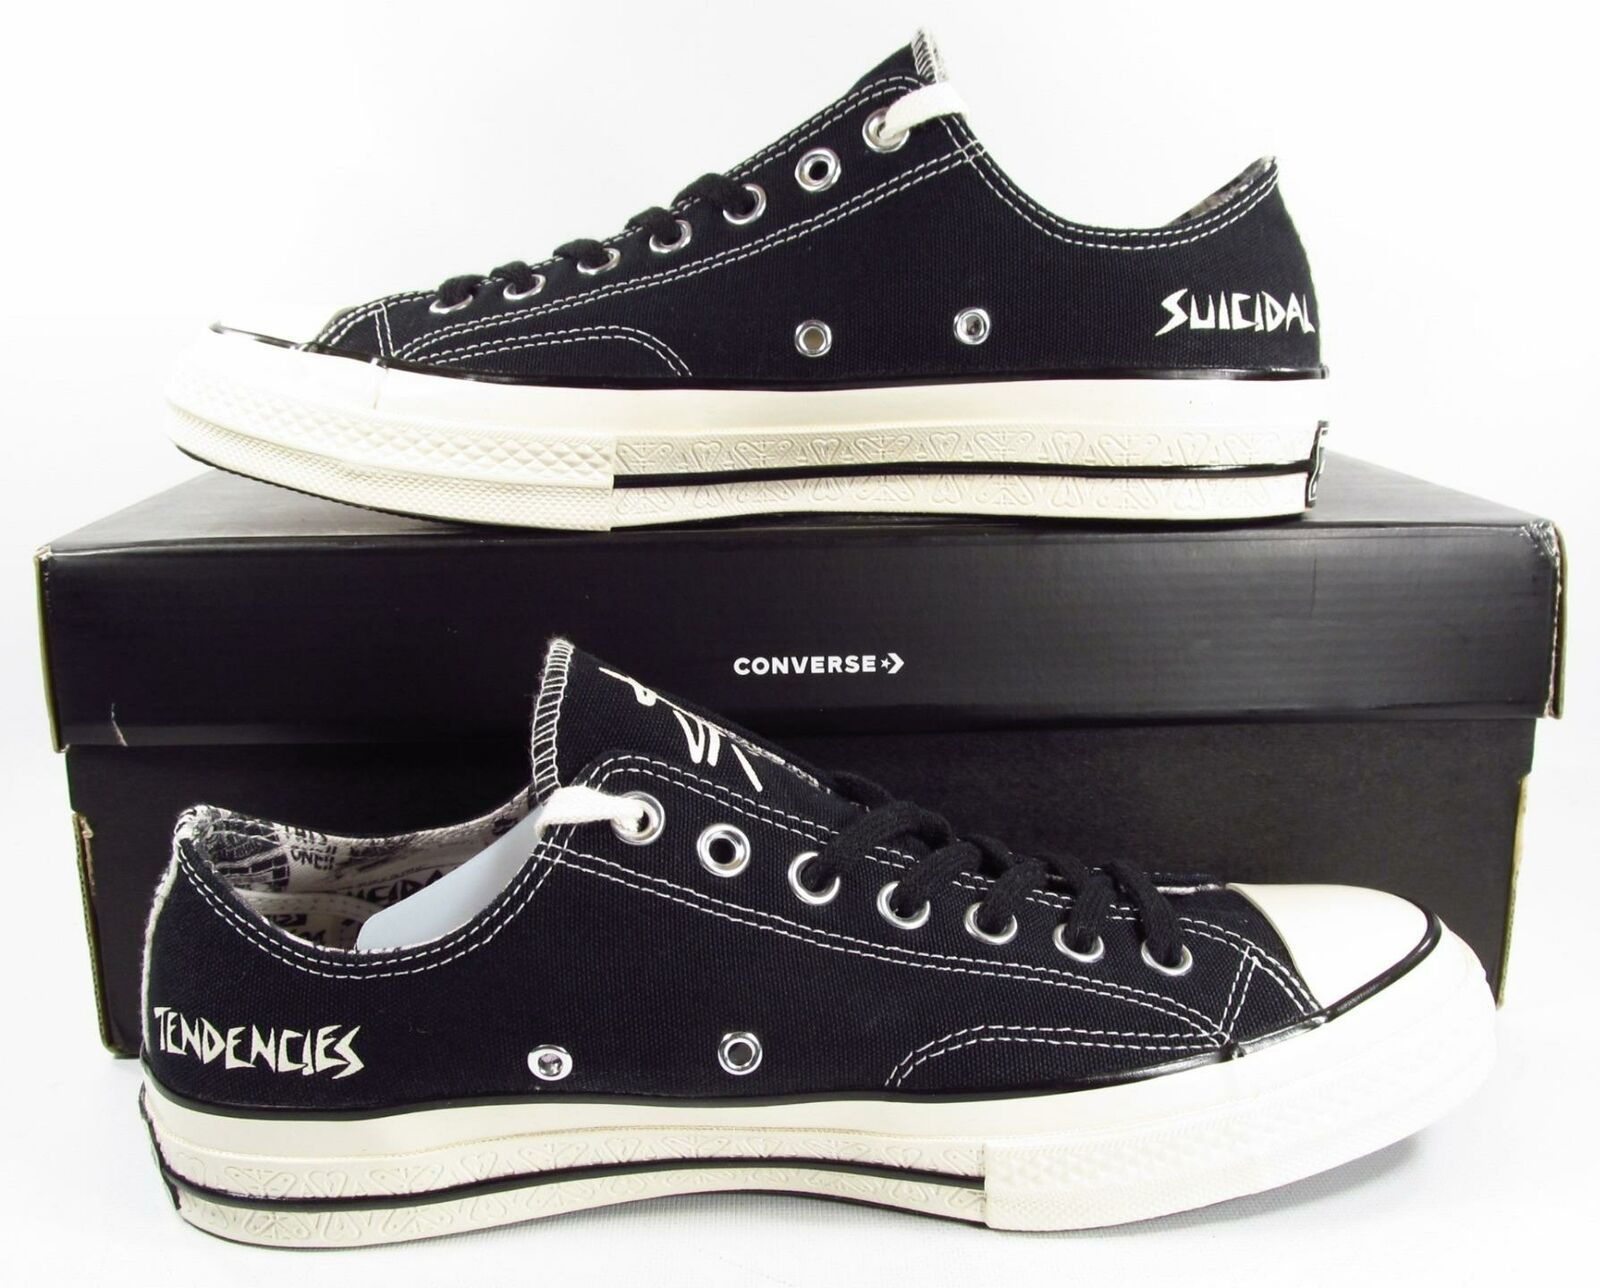 Converse x Suical Tendencies Chuck Taylor All Star Ox Chuck 70 BLACK 162881C